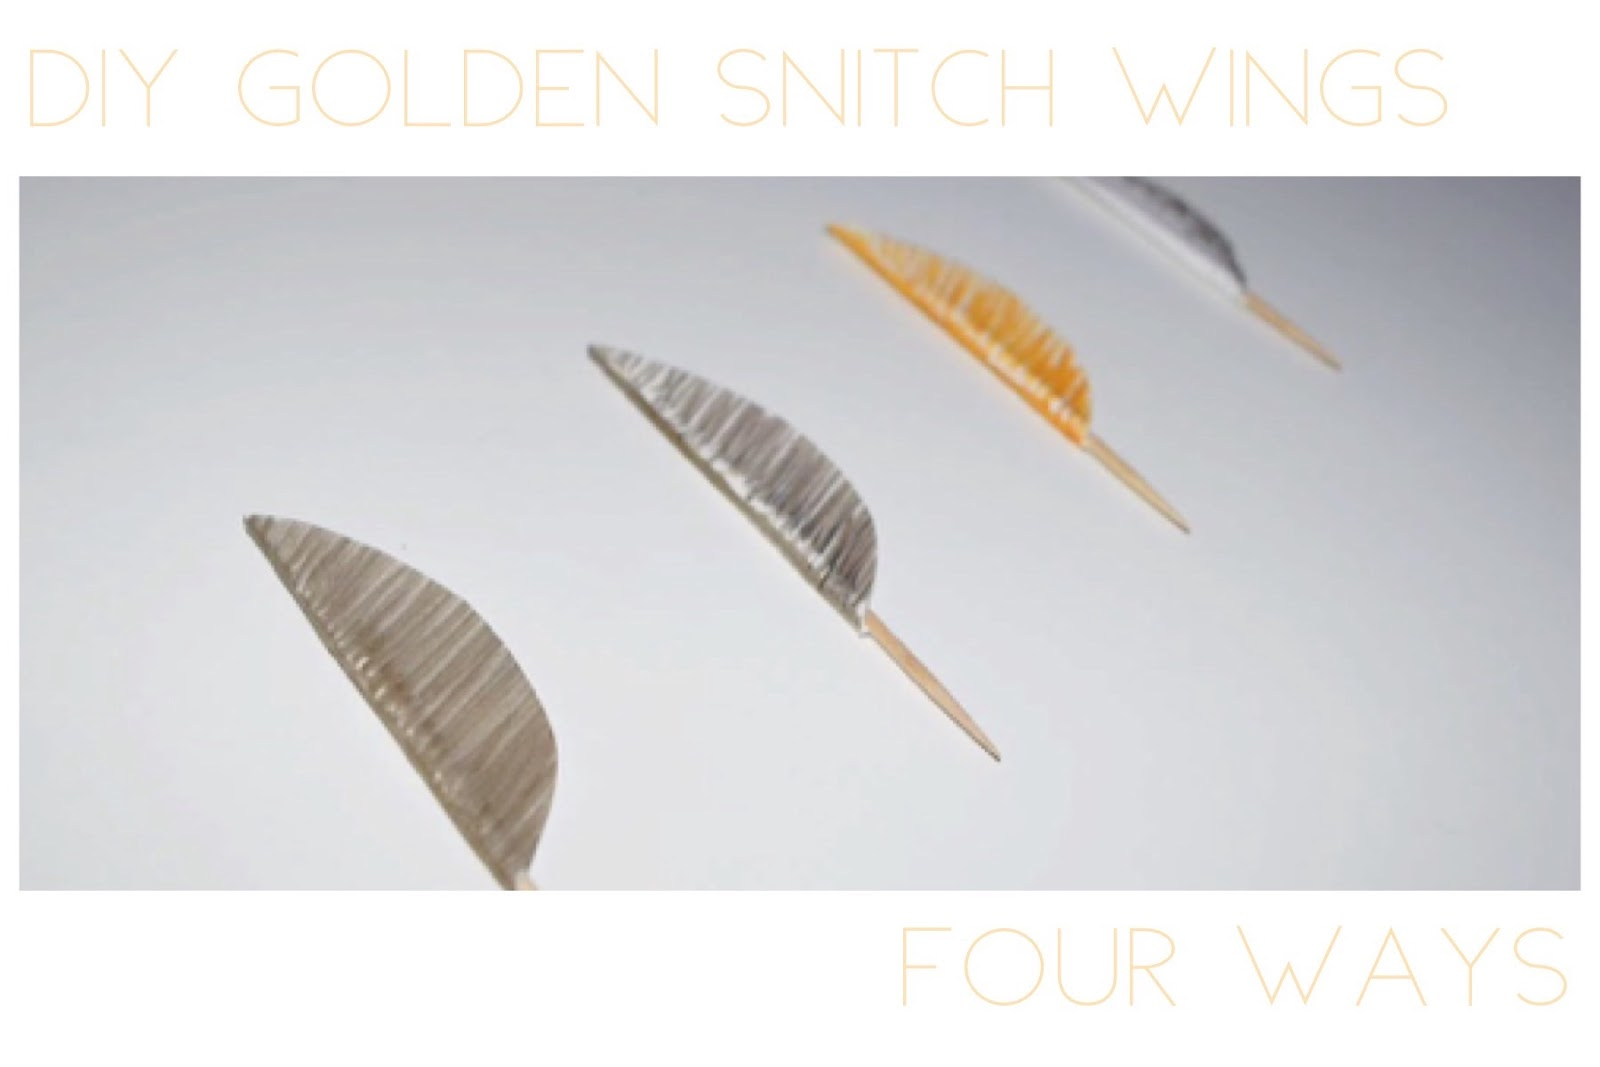 photograph regarding Golden Snitch Wings Printable named Snitch Wings Equivalent Keyword phrases Recommendations - Snitch Wings